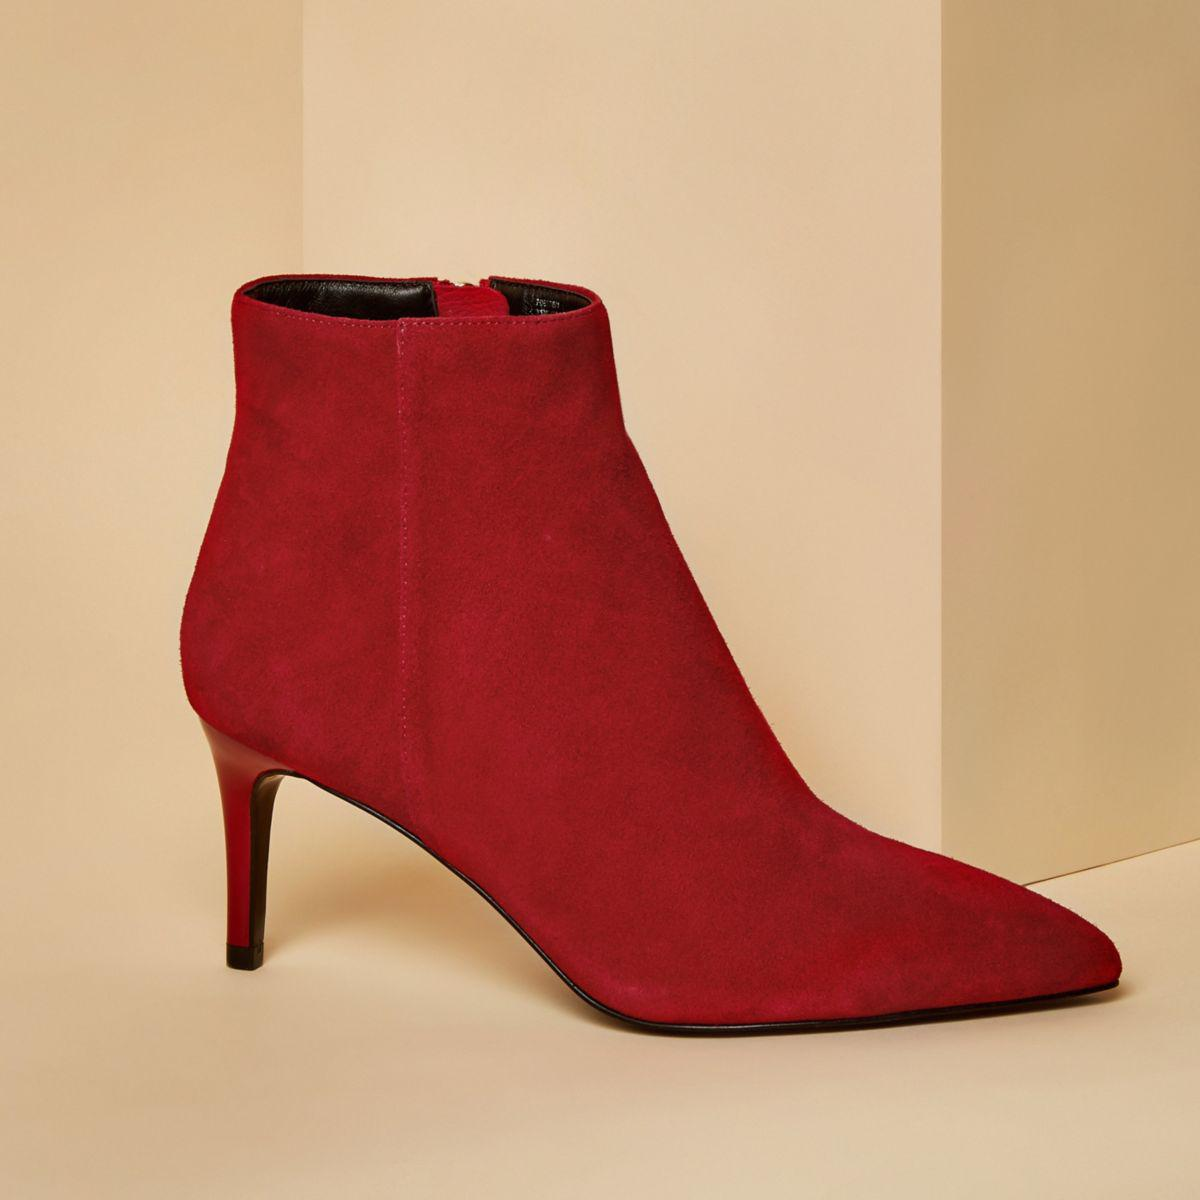 Lyst River Island Red Suede Pointed Kitten Heel Boots In Red